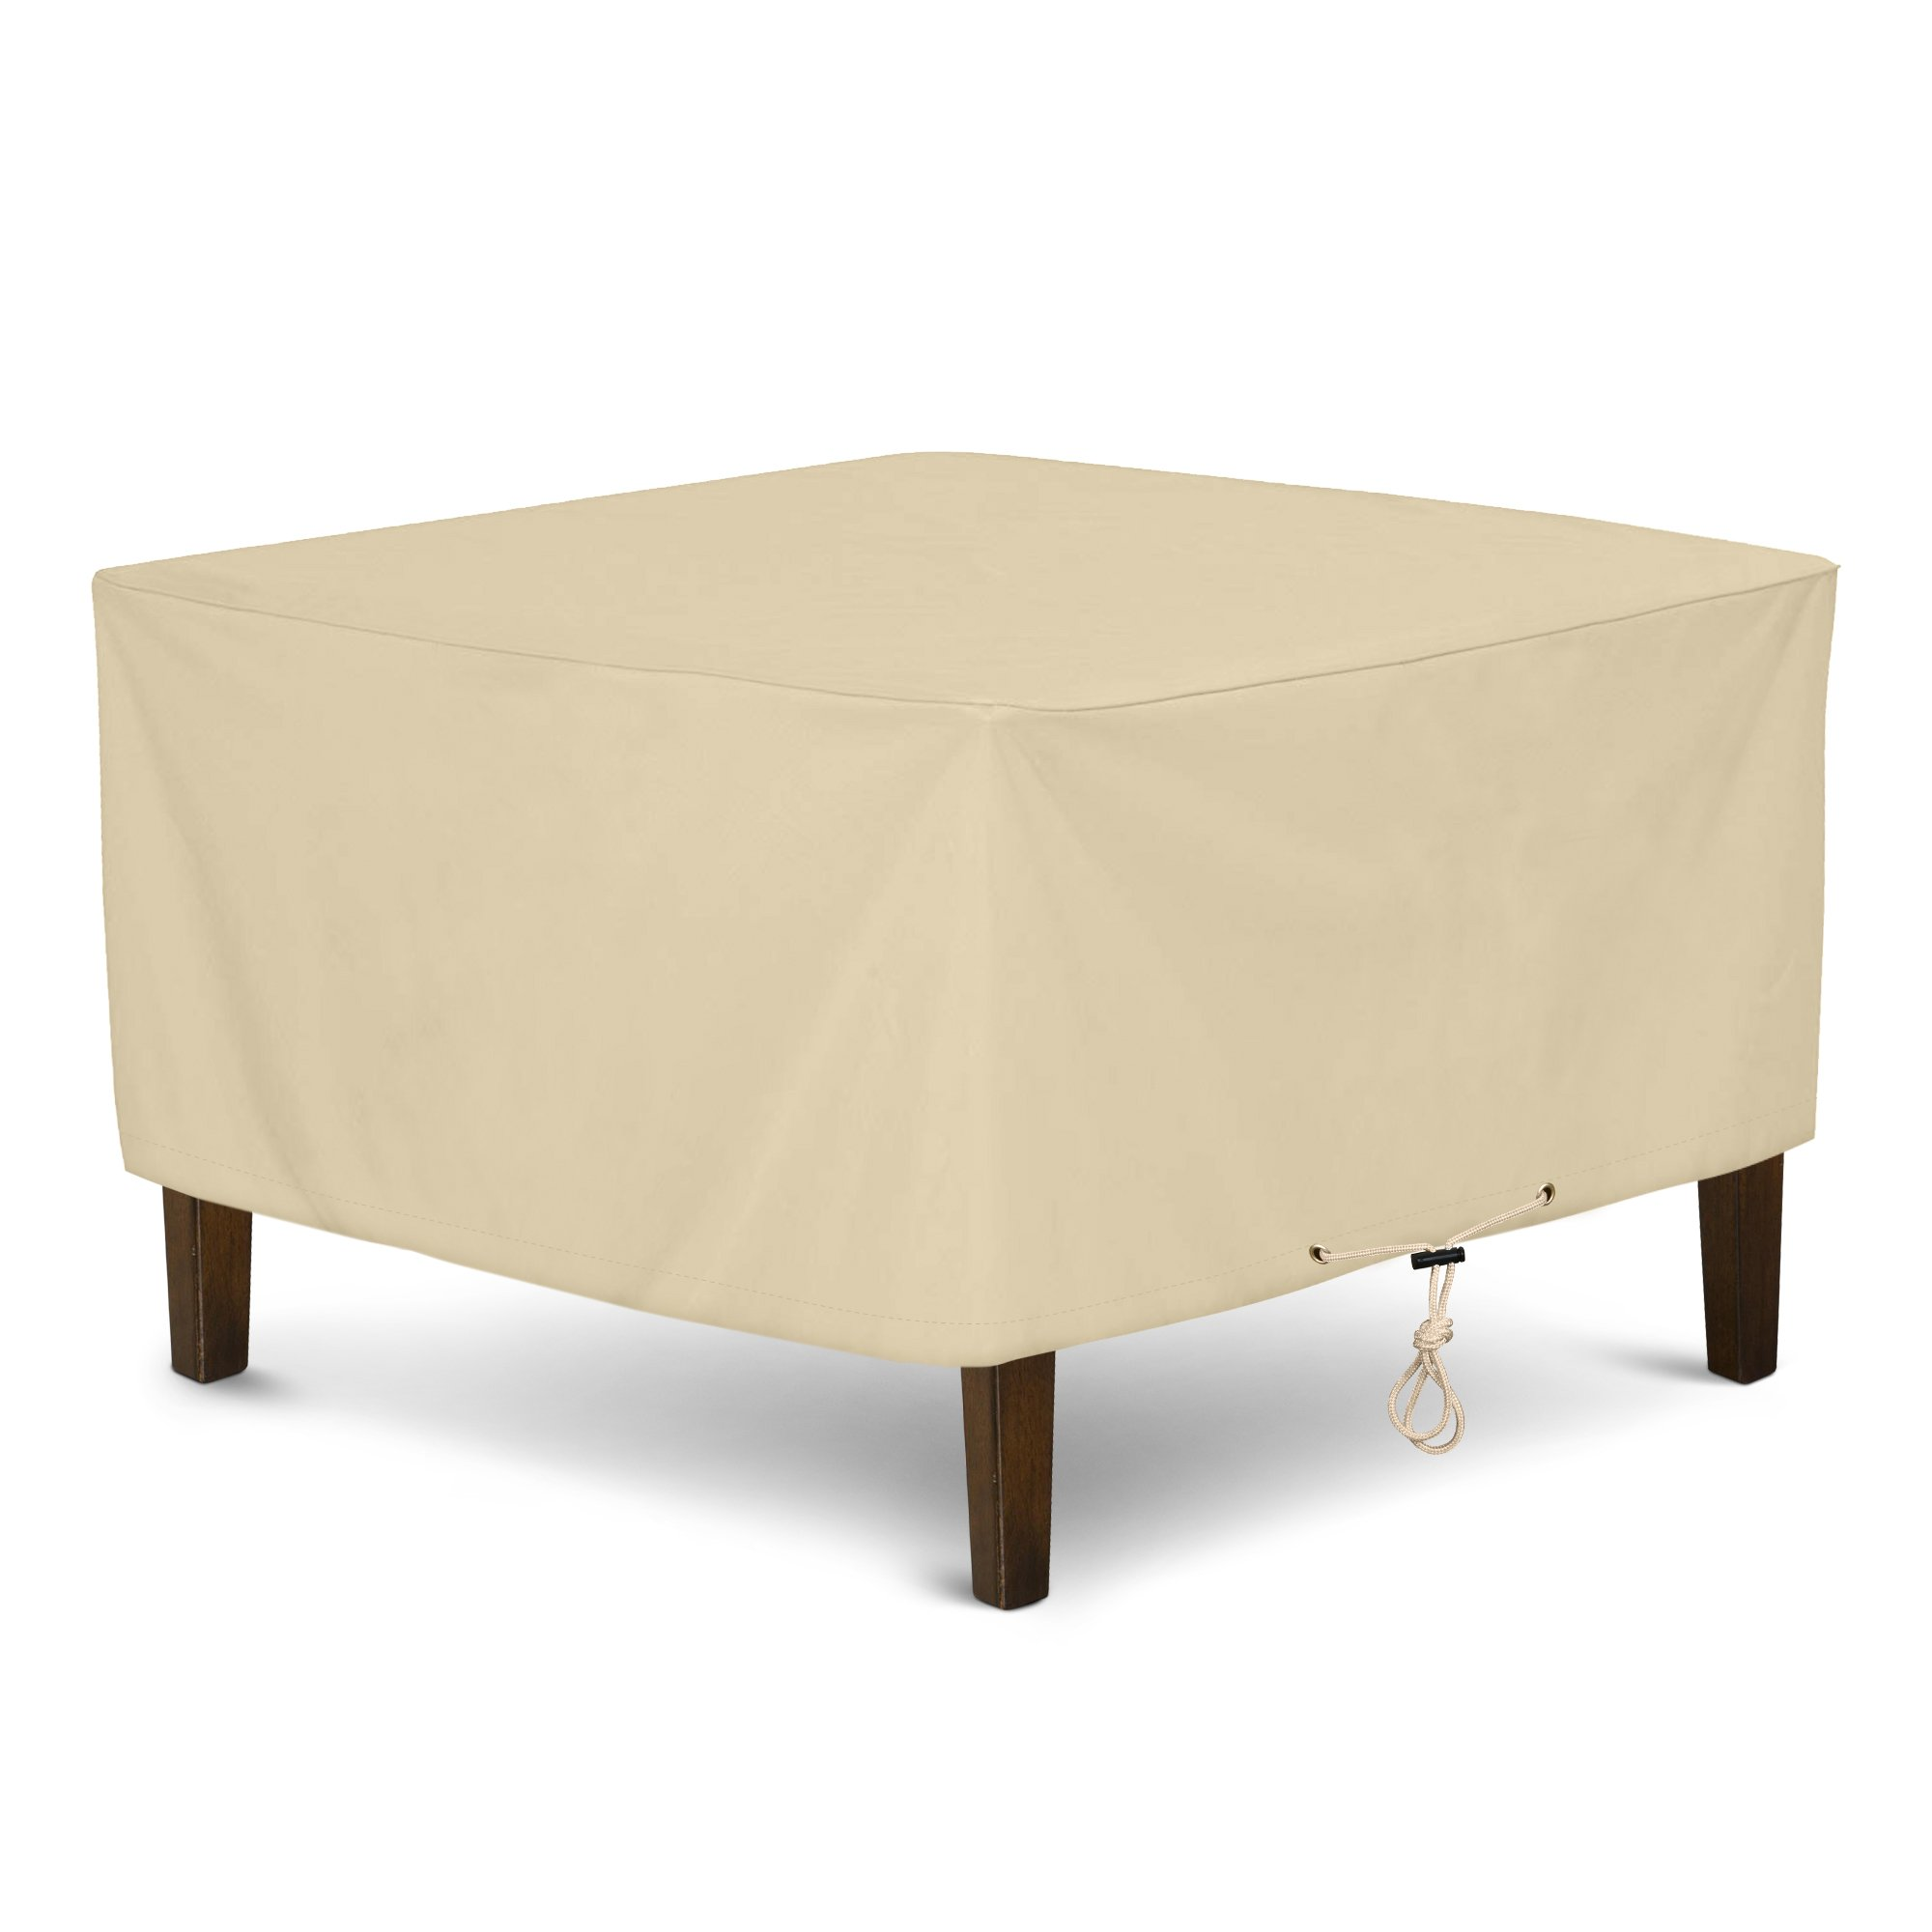 SunPatio Outdoor Ottoman Cover, Square Coffee Table Cover, Heavy Duty Waterproof Patio Furniture Side Table Cove, All Weather Protection, 32'' L x 32'' W x 18'' H, Beige